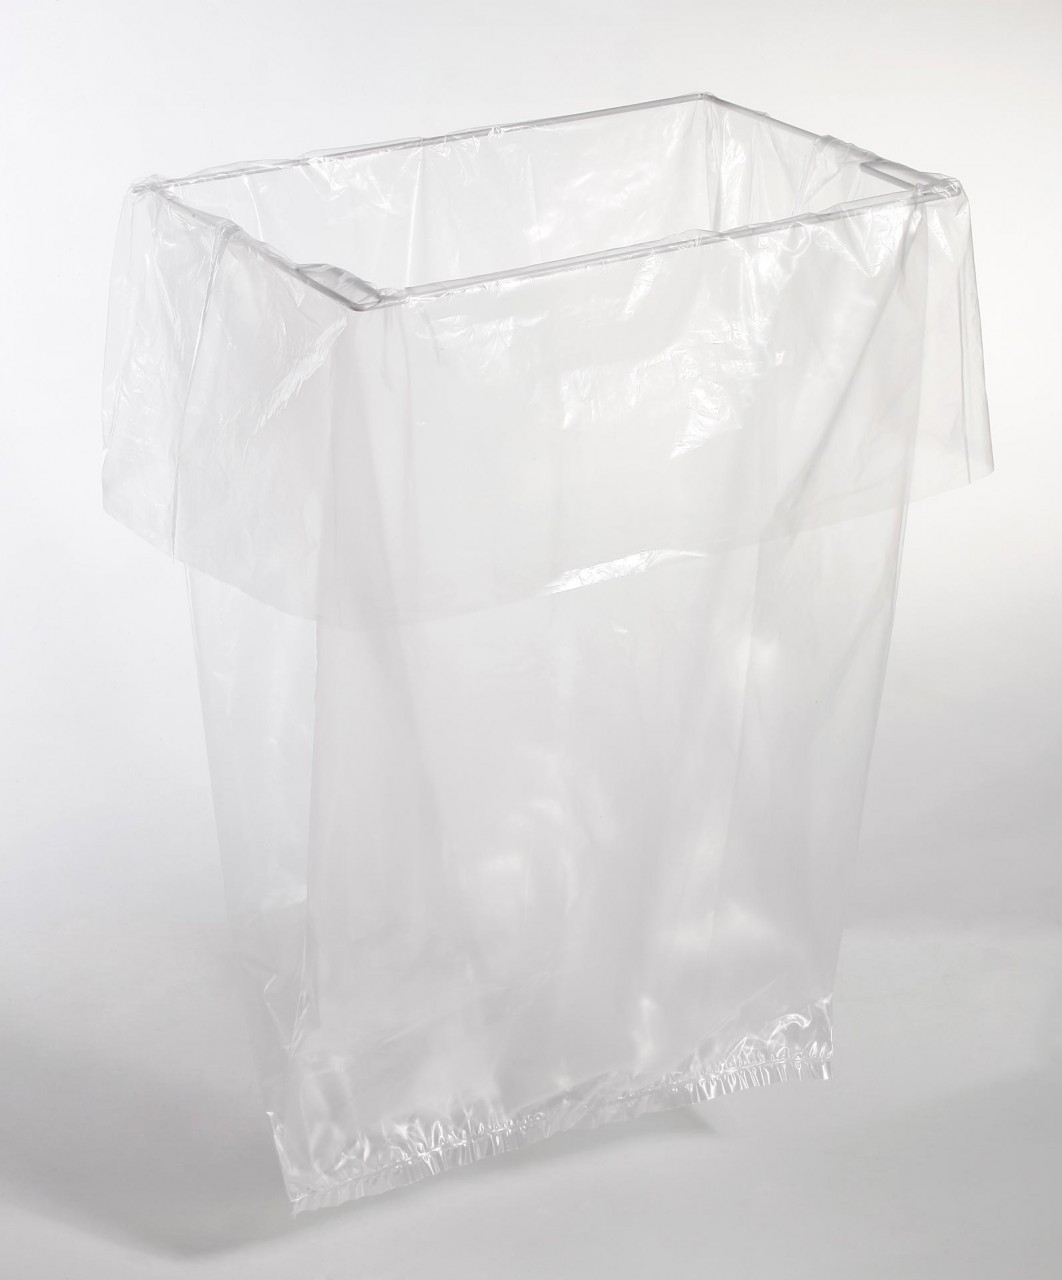 Dahle 20751 190 Litre Waste Bags Suits Models 20390/20396/20451-53 (Pack of 5)